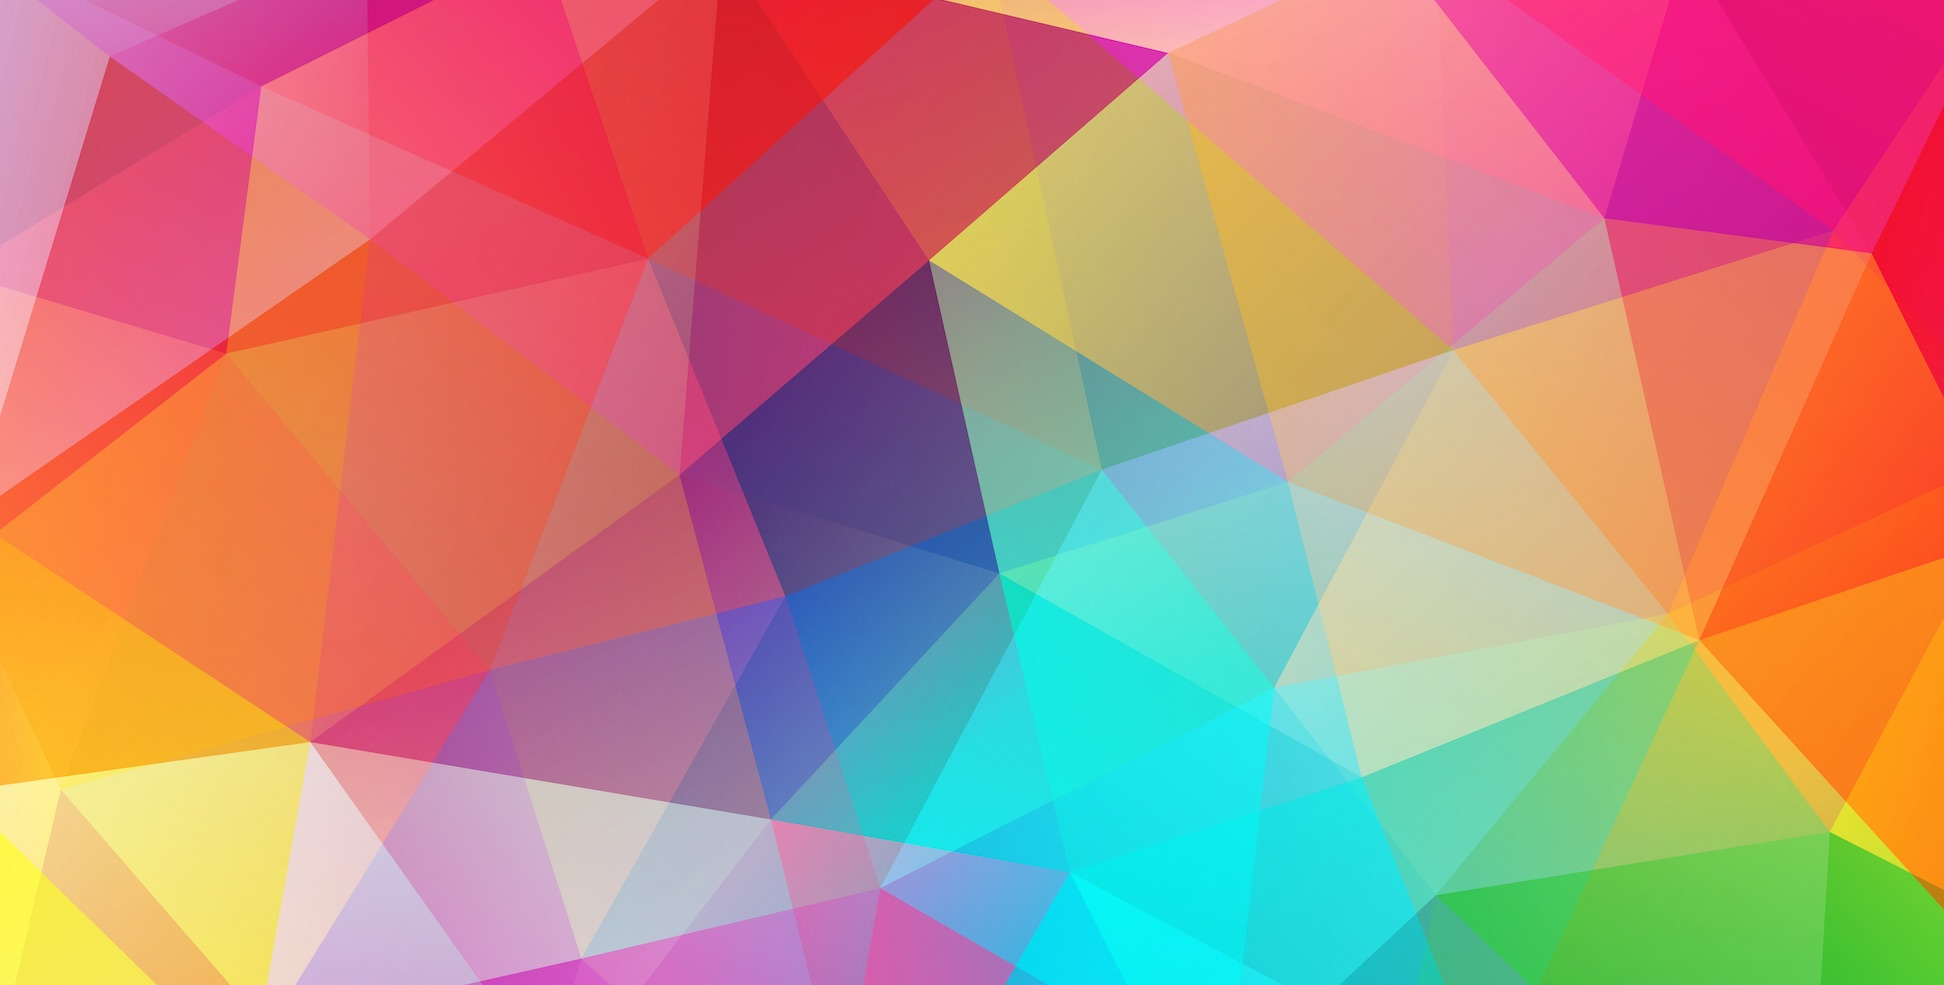 Art color psychology - Web Design Color Theory How To Create The Right Emotions With Color In Web Design